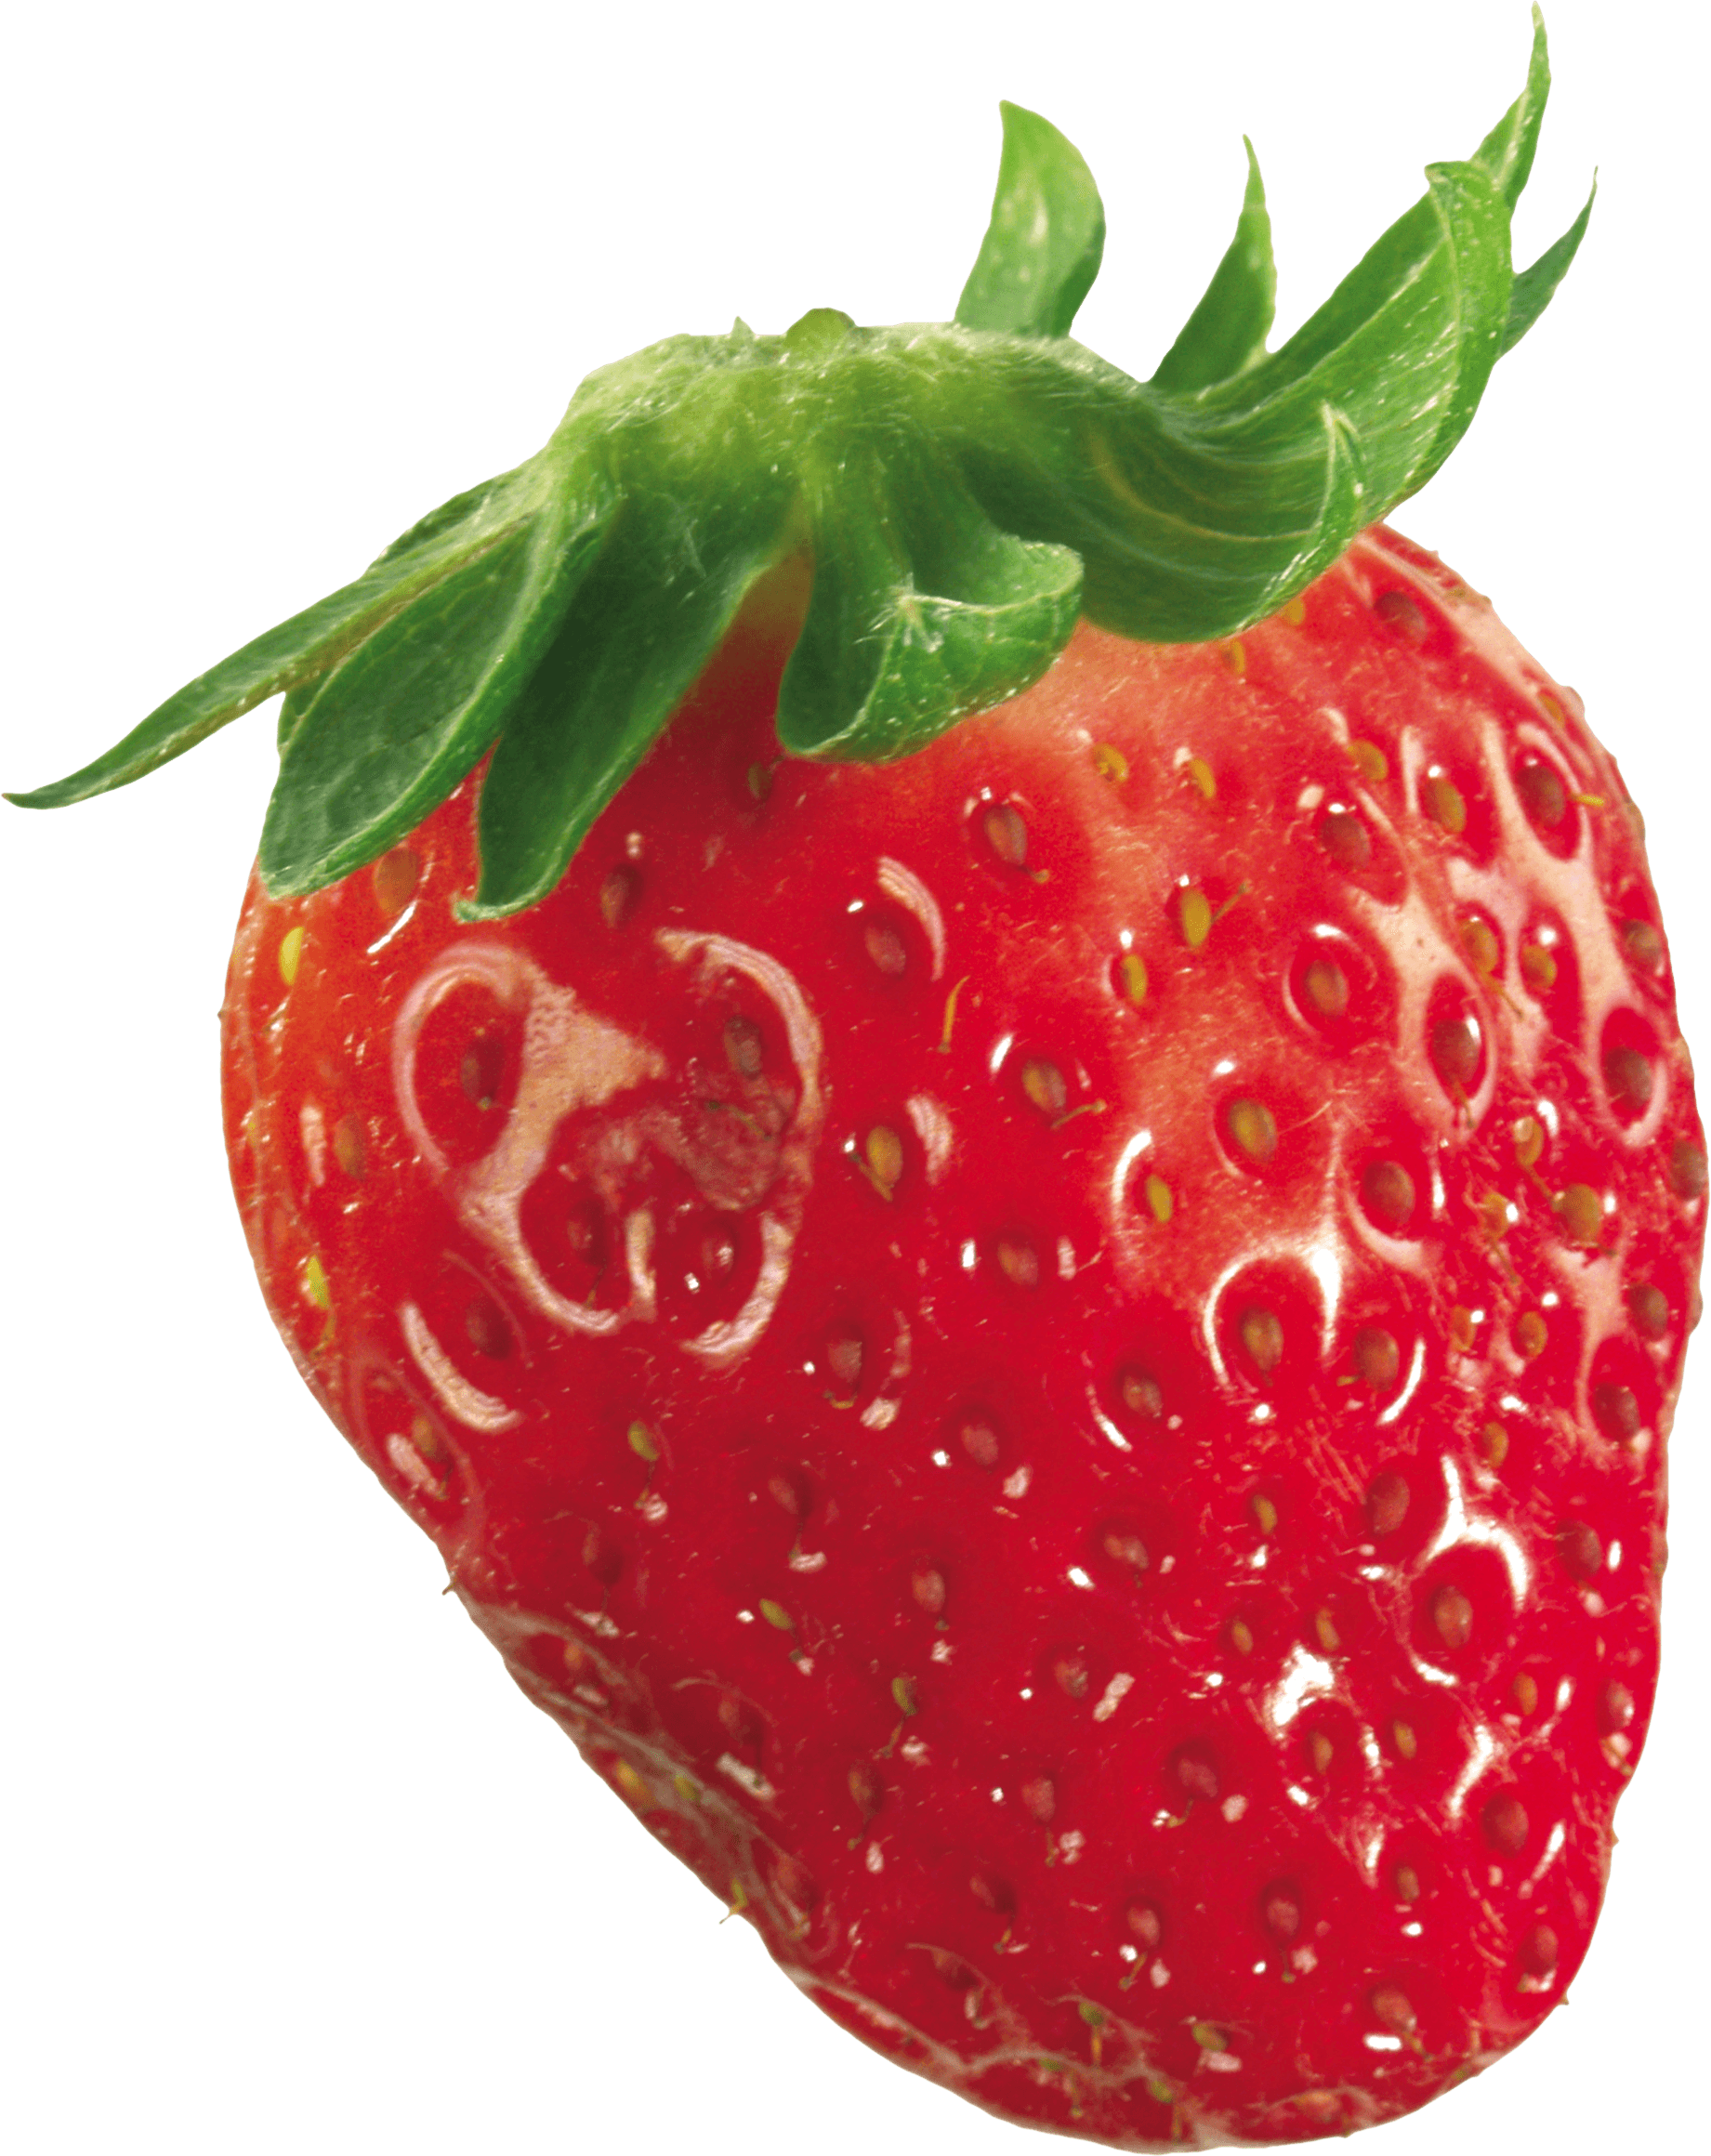 Strawberry PNG Images Transparent Free Download